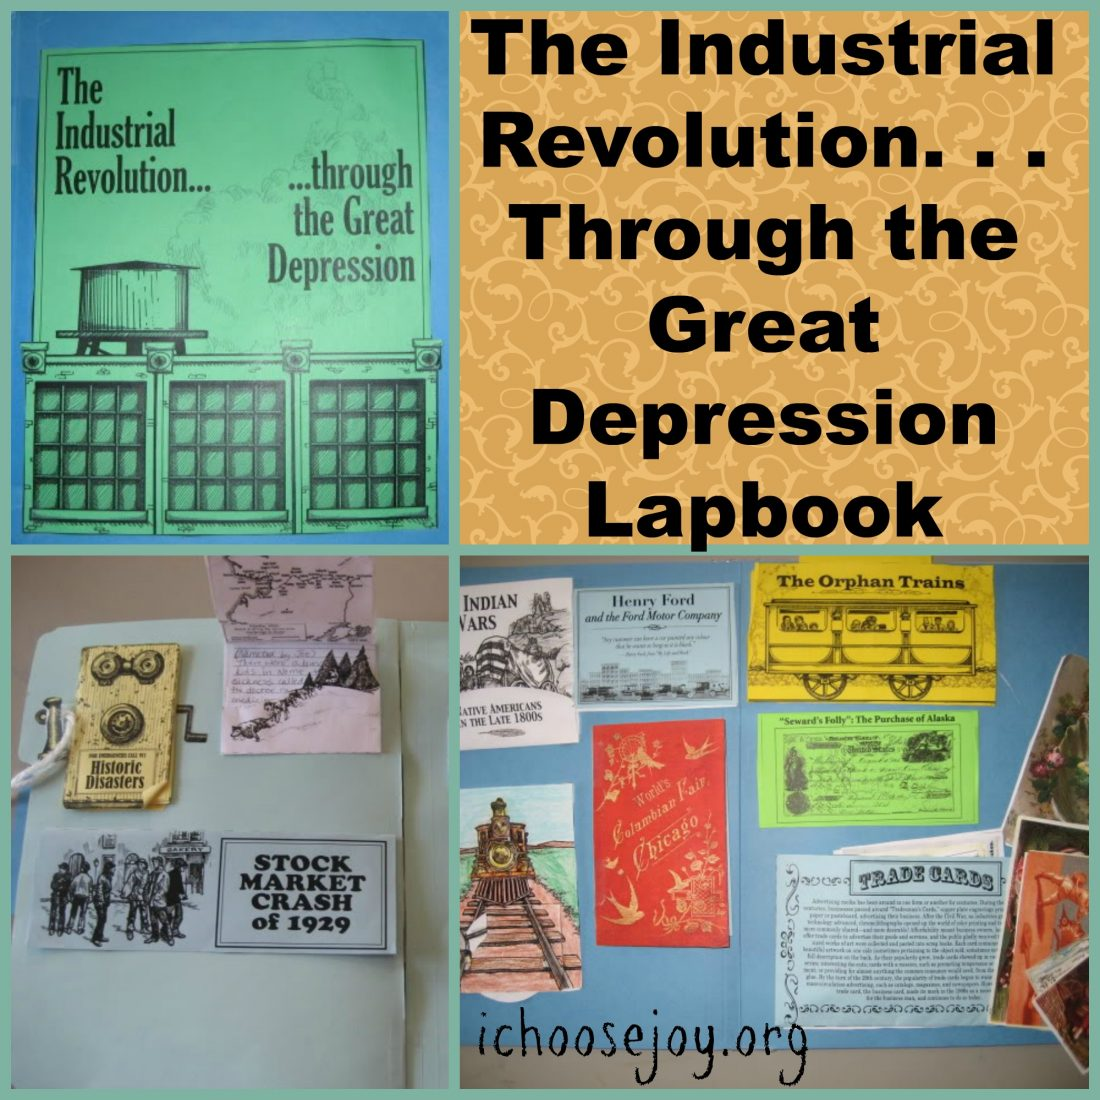 Industrial Revolution Through Great Depression lapbook